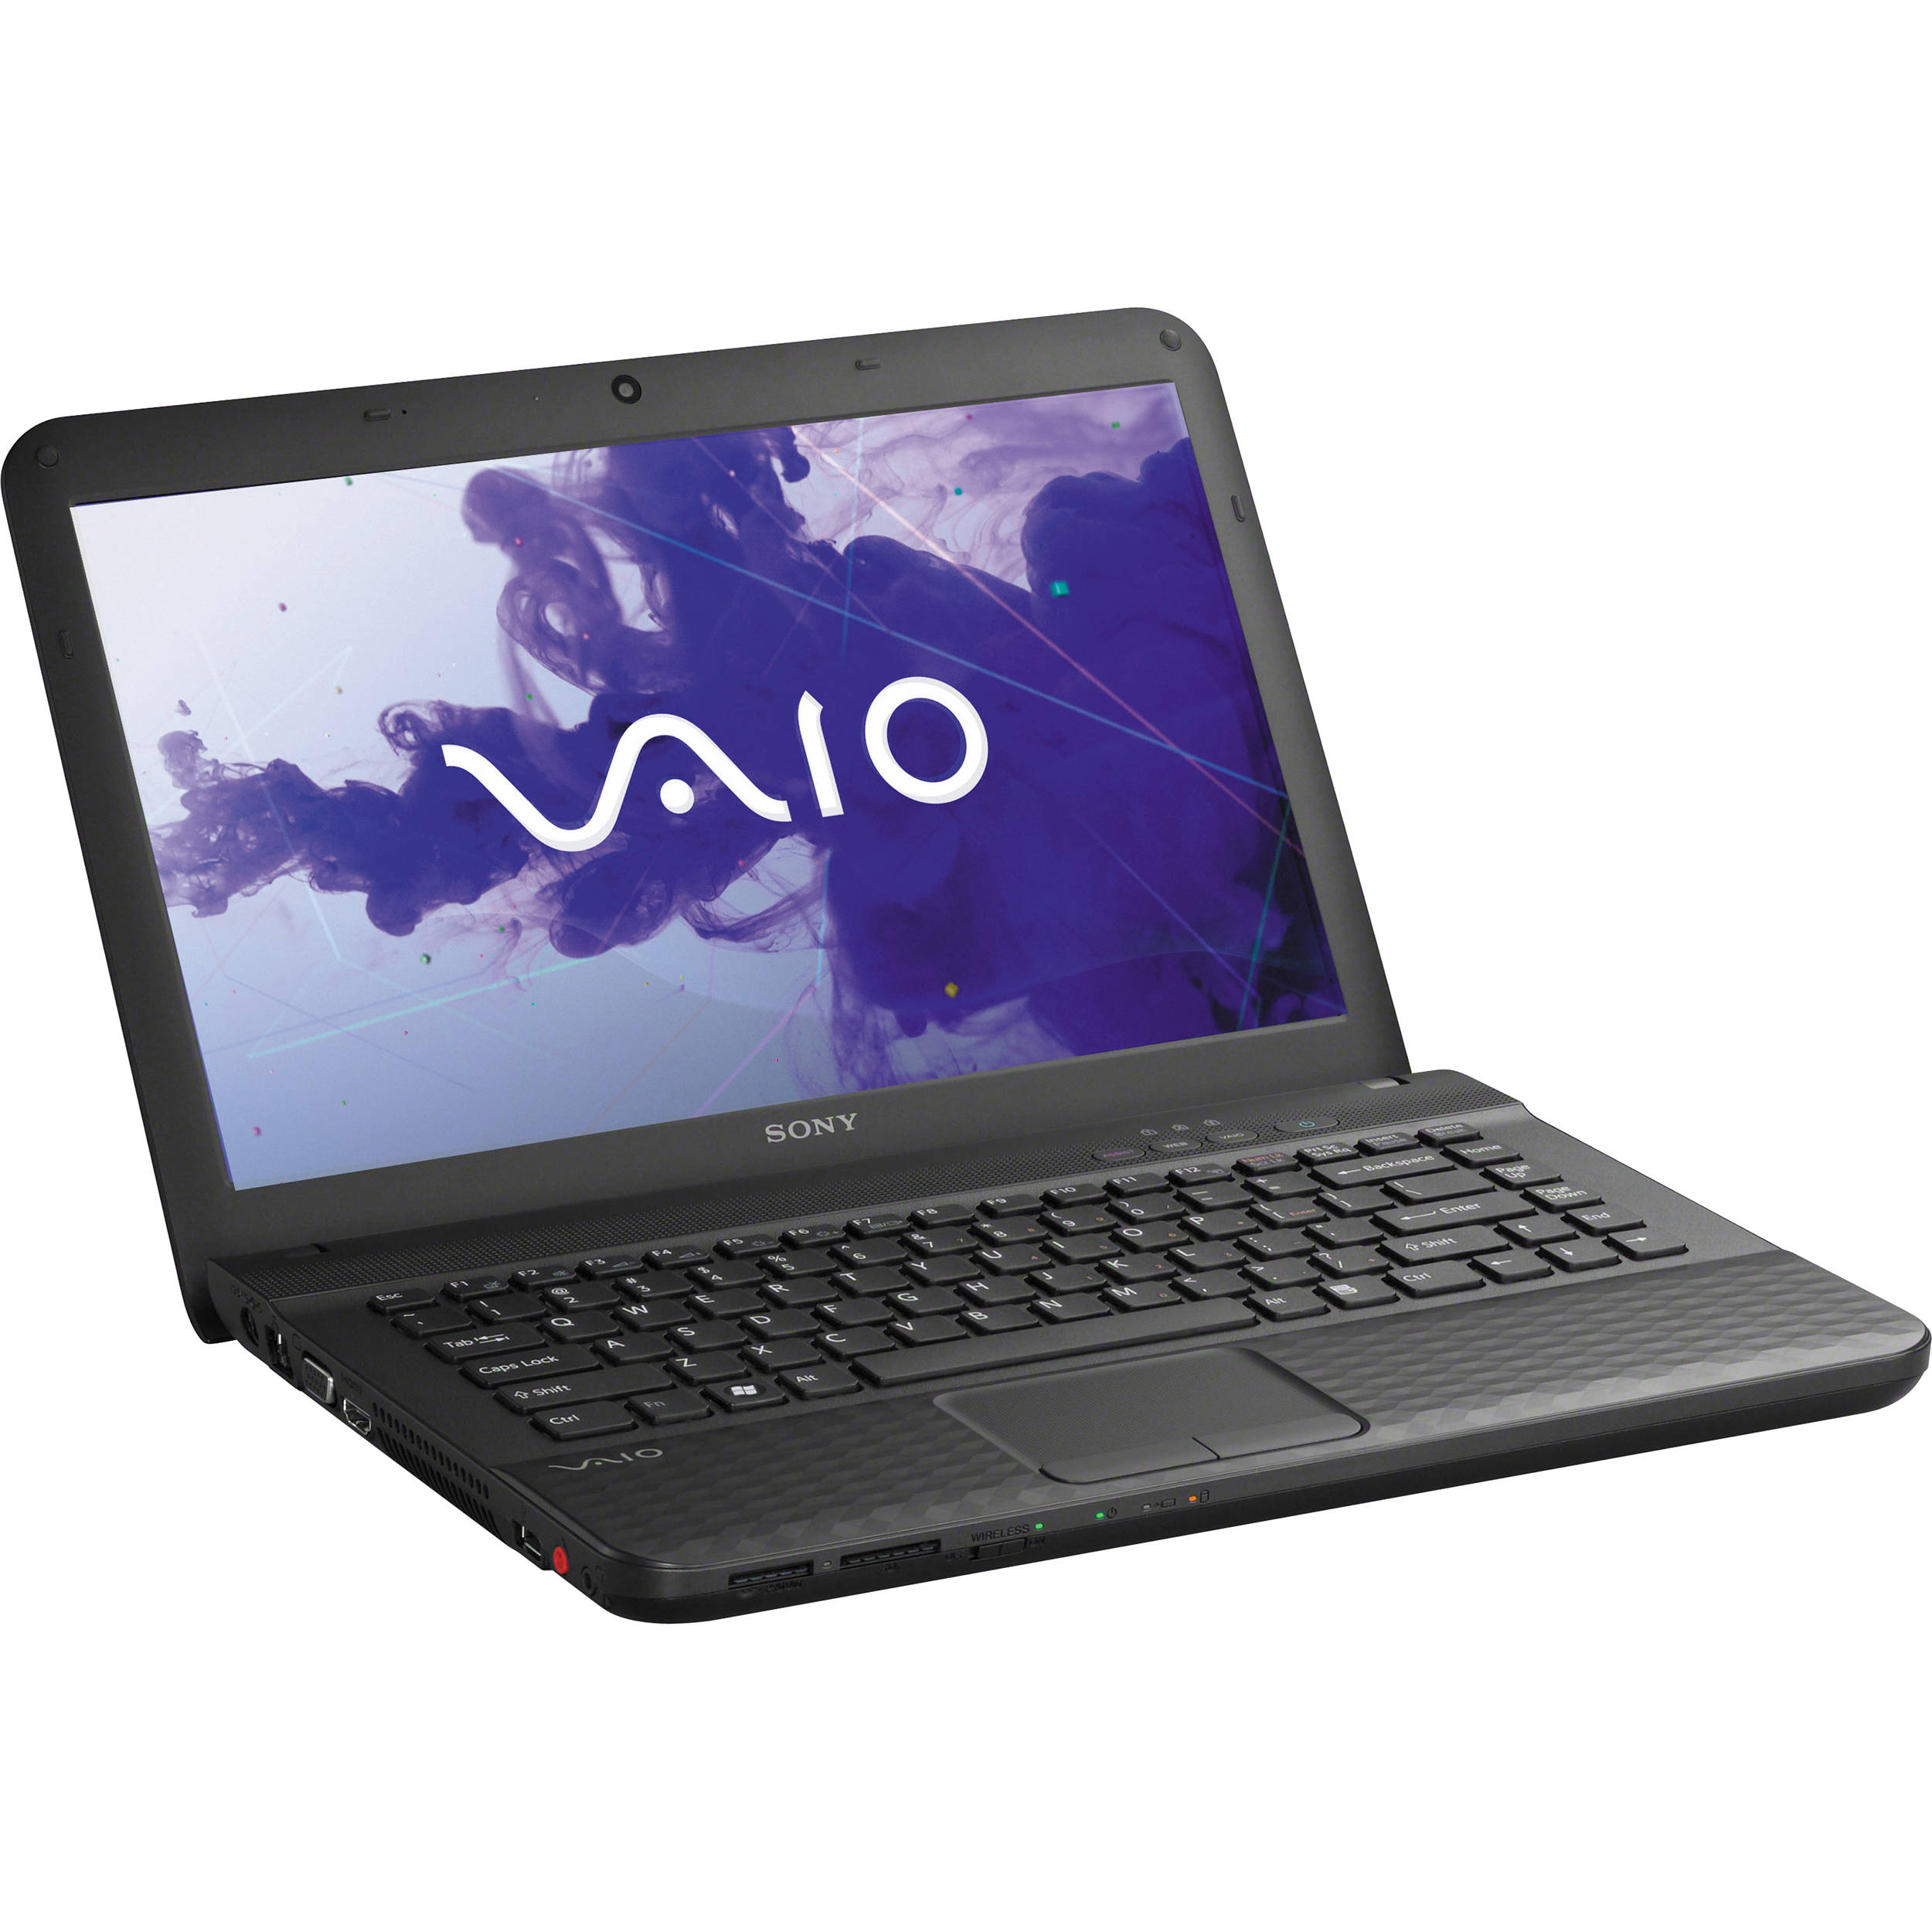 Sony Vaio VPCEG21FXB Easy Connect Drivers for Windows 7